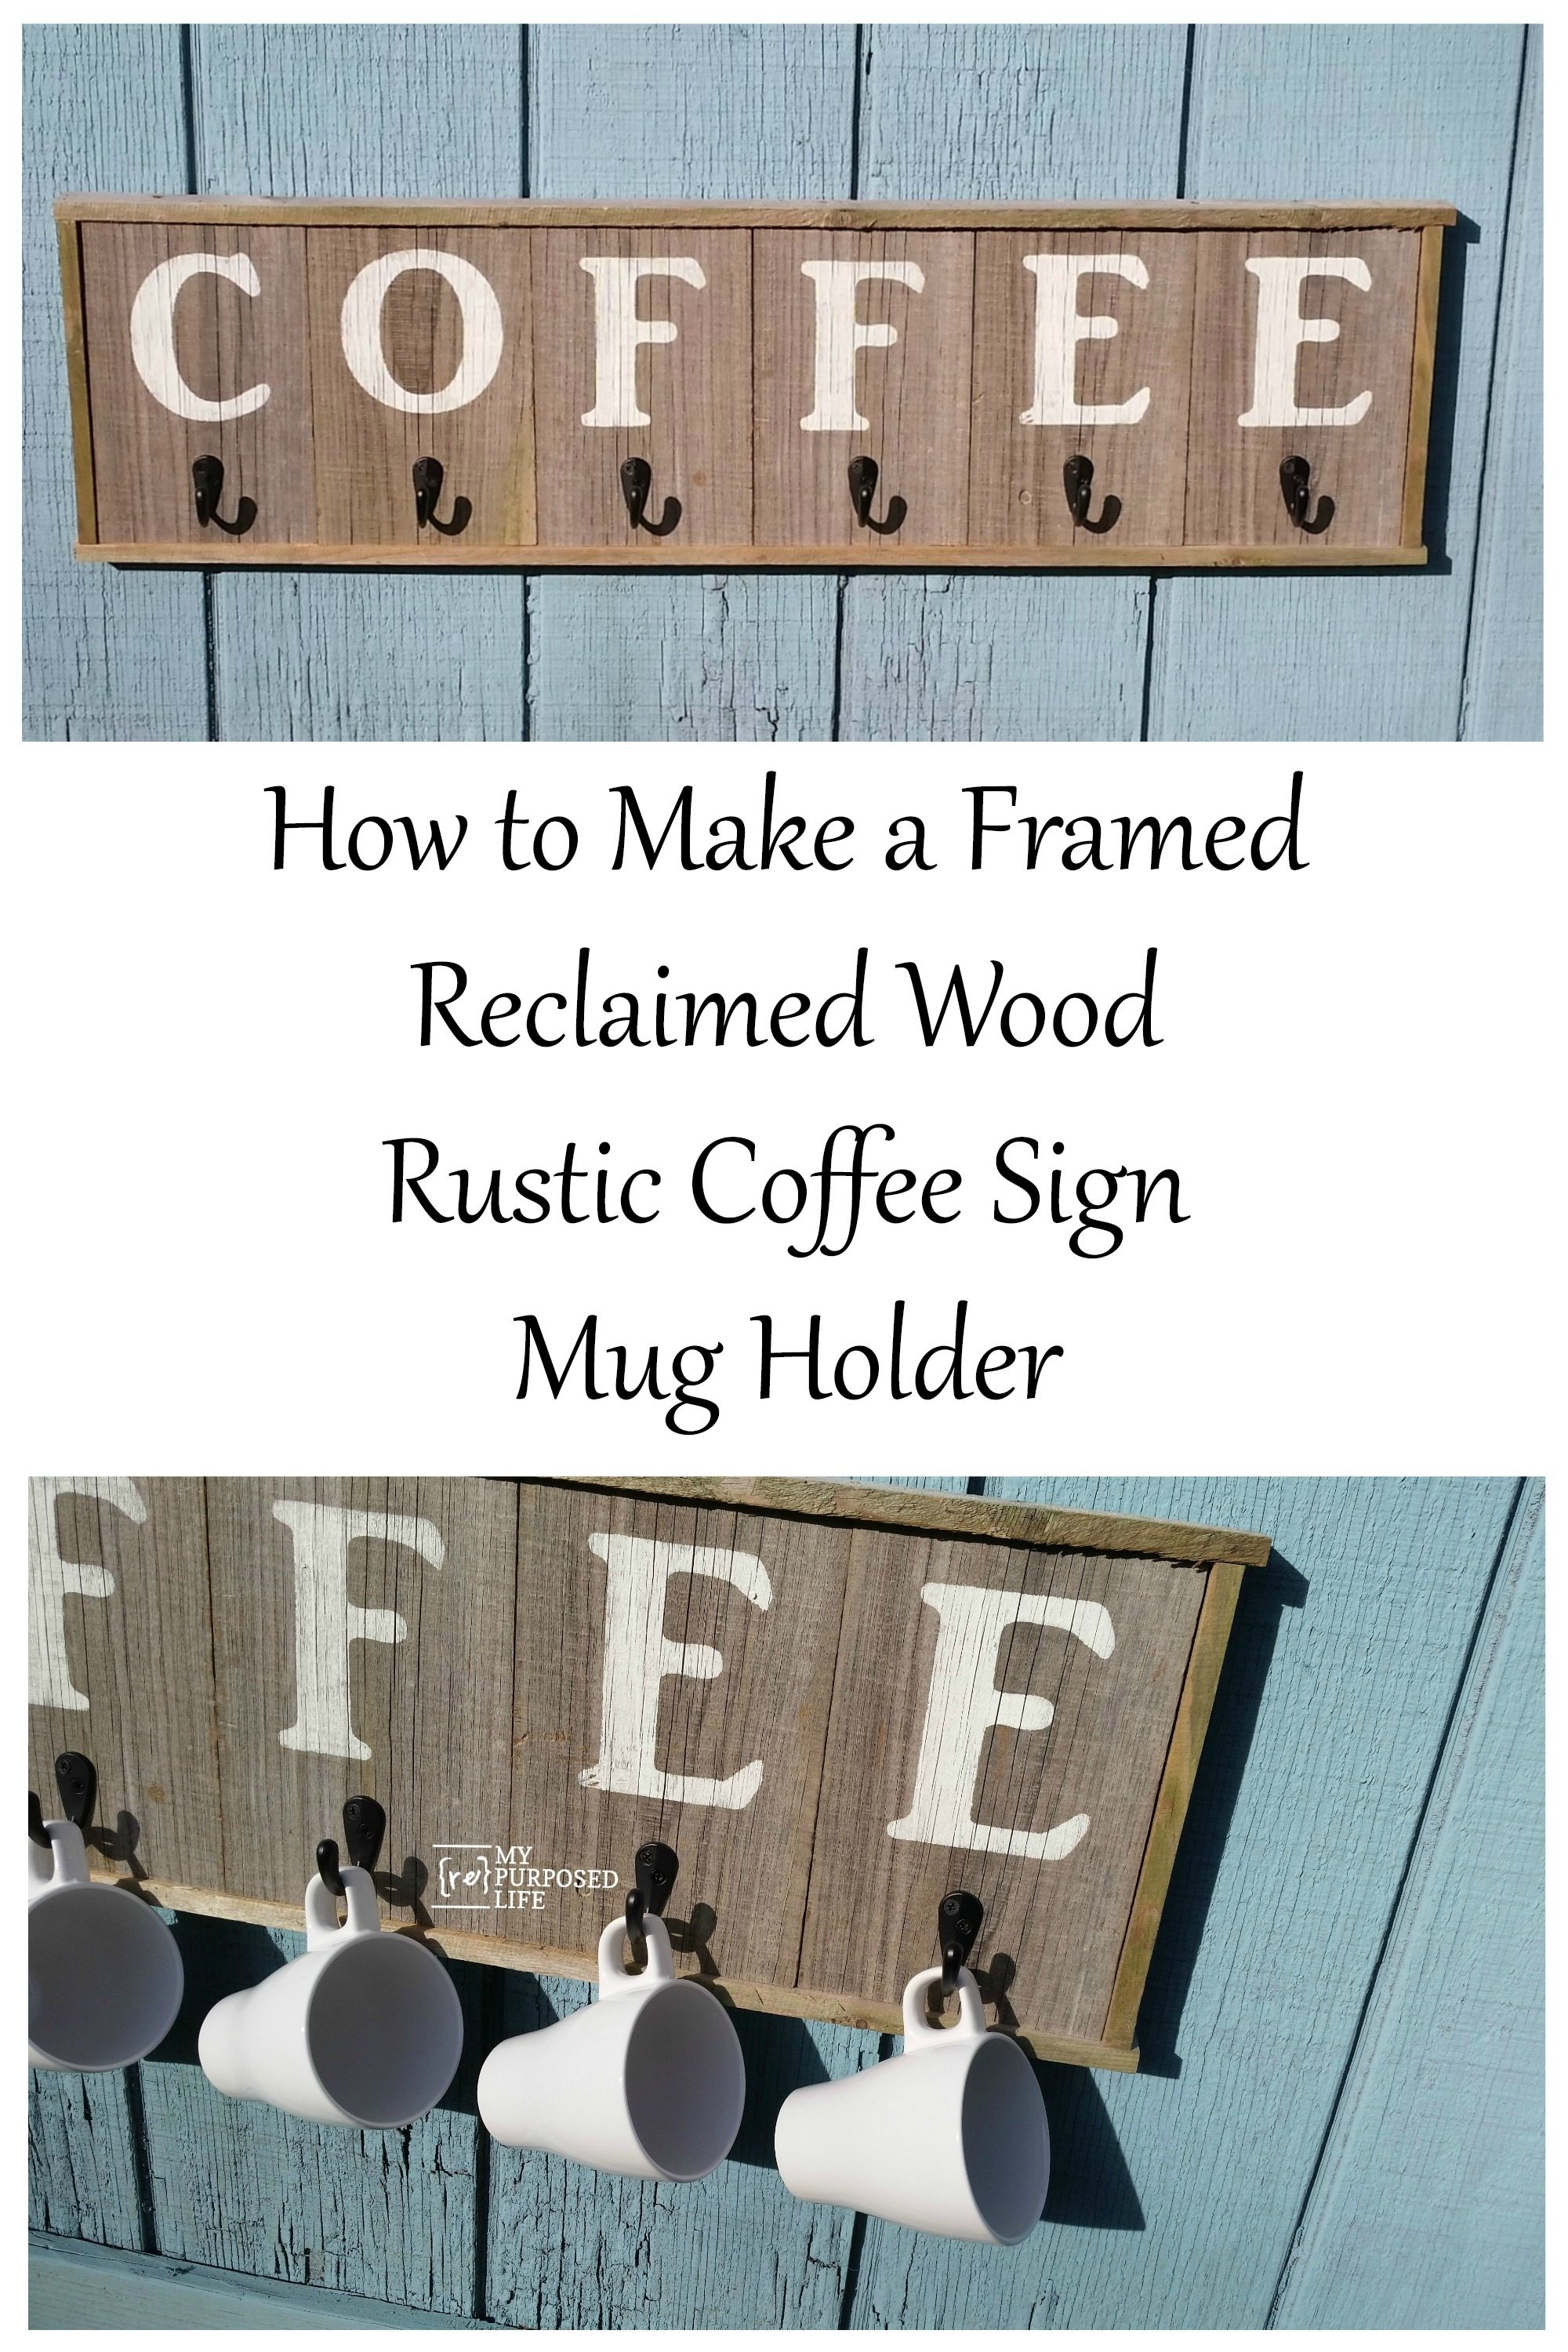 This easy tutorial will show you how to make a coffee sign that holds coffee mugs. Single hooks are great for holding coffee cups on the reclaimed wood sign. Perfect for displaying those special coffee cups!